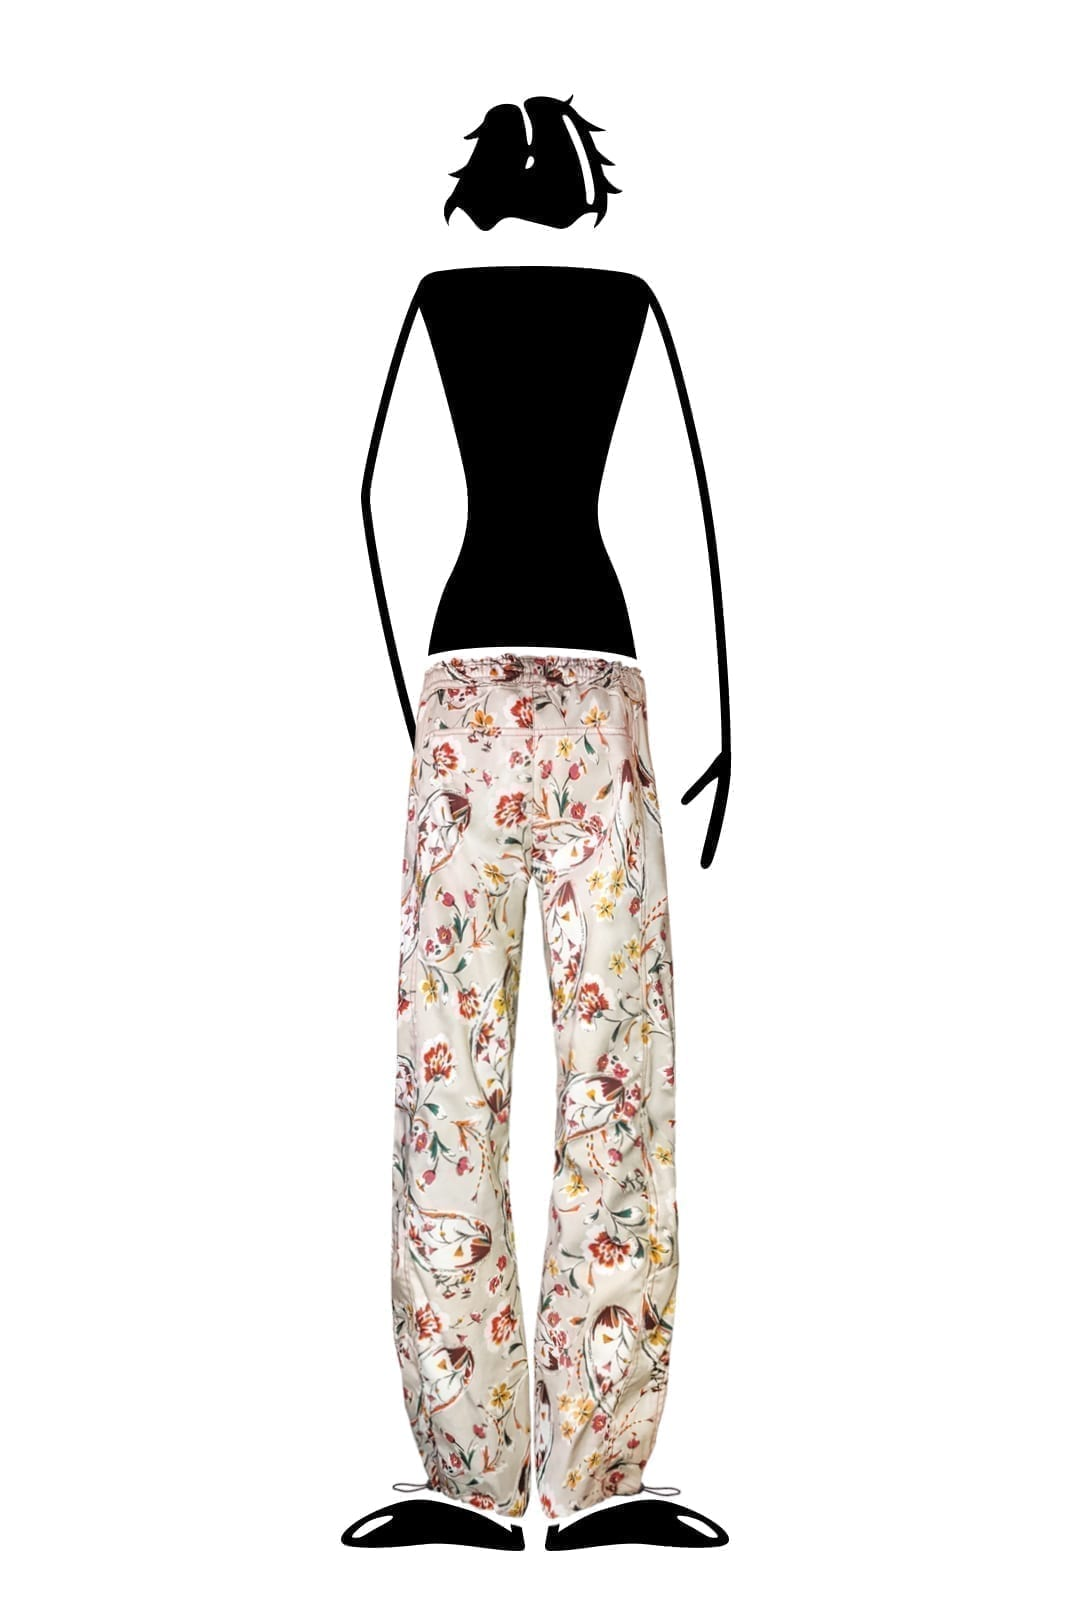 trousers women floral paisley cotton VIOLET Monvic multiflower